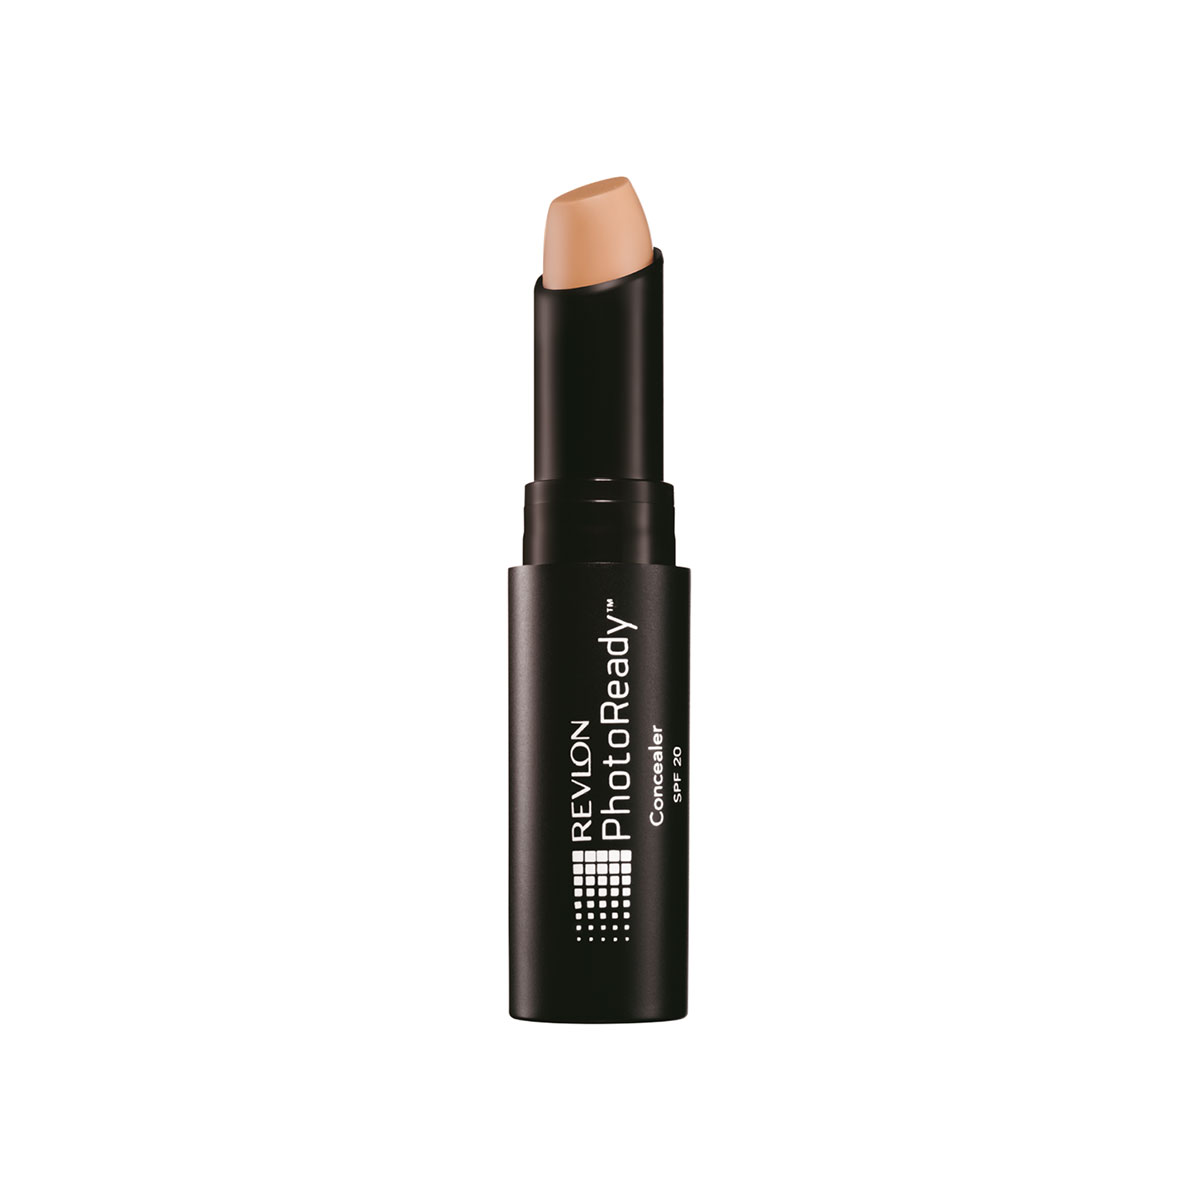 Revlon Консилер для Лица Photoready Concealer Medium 004 22 г пудра для лица photoready powder light medium 20